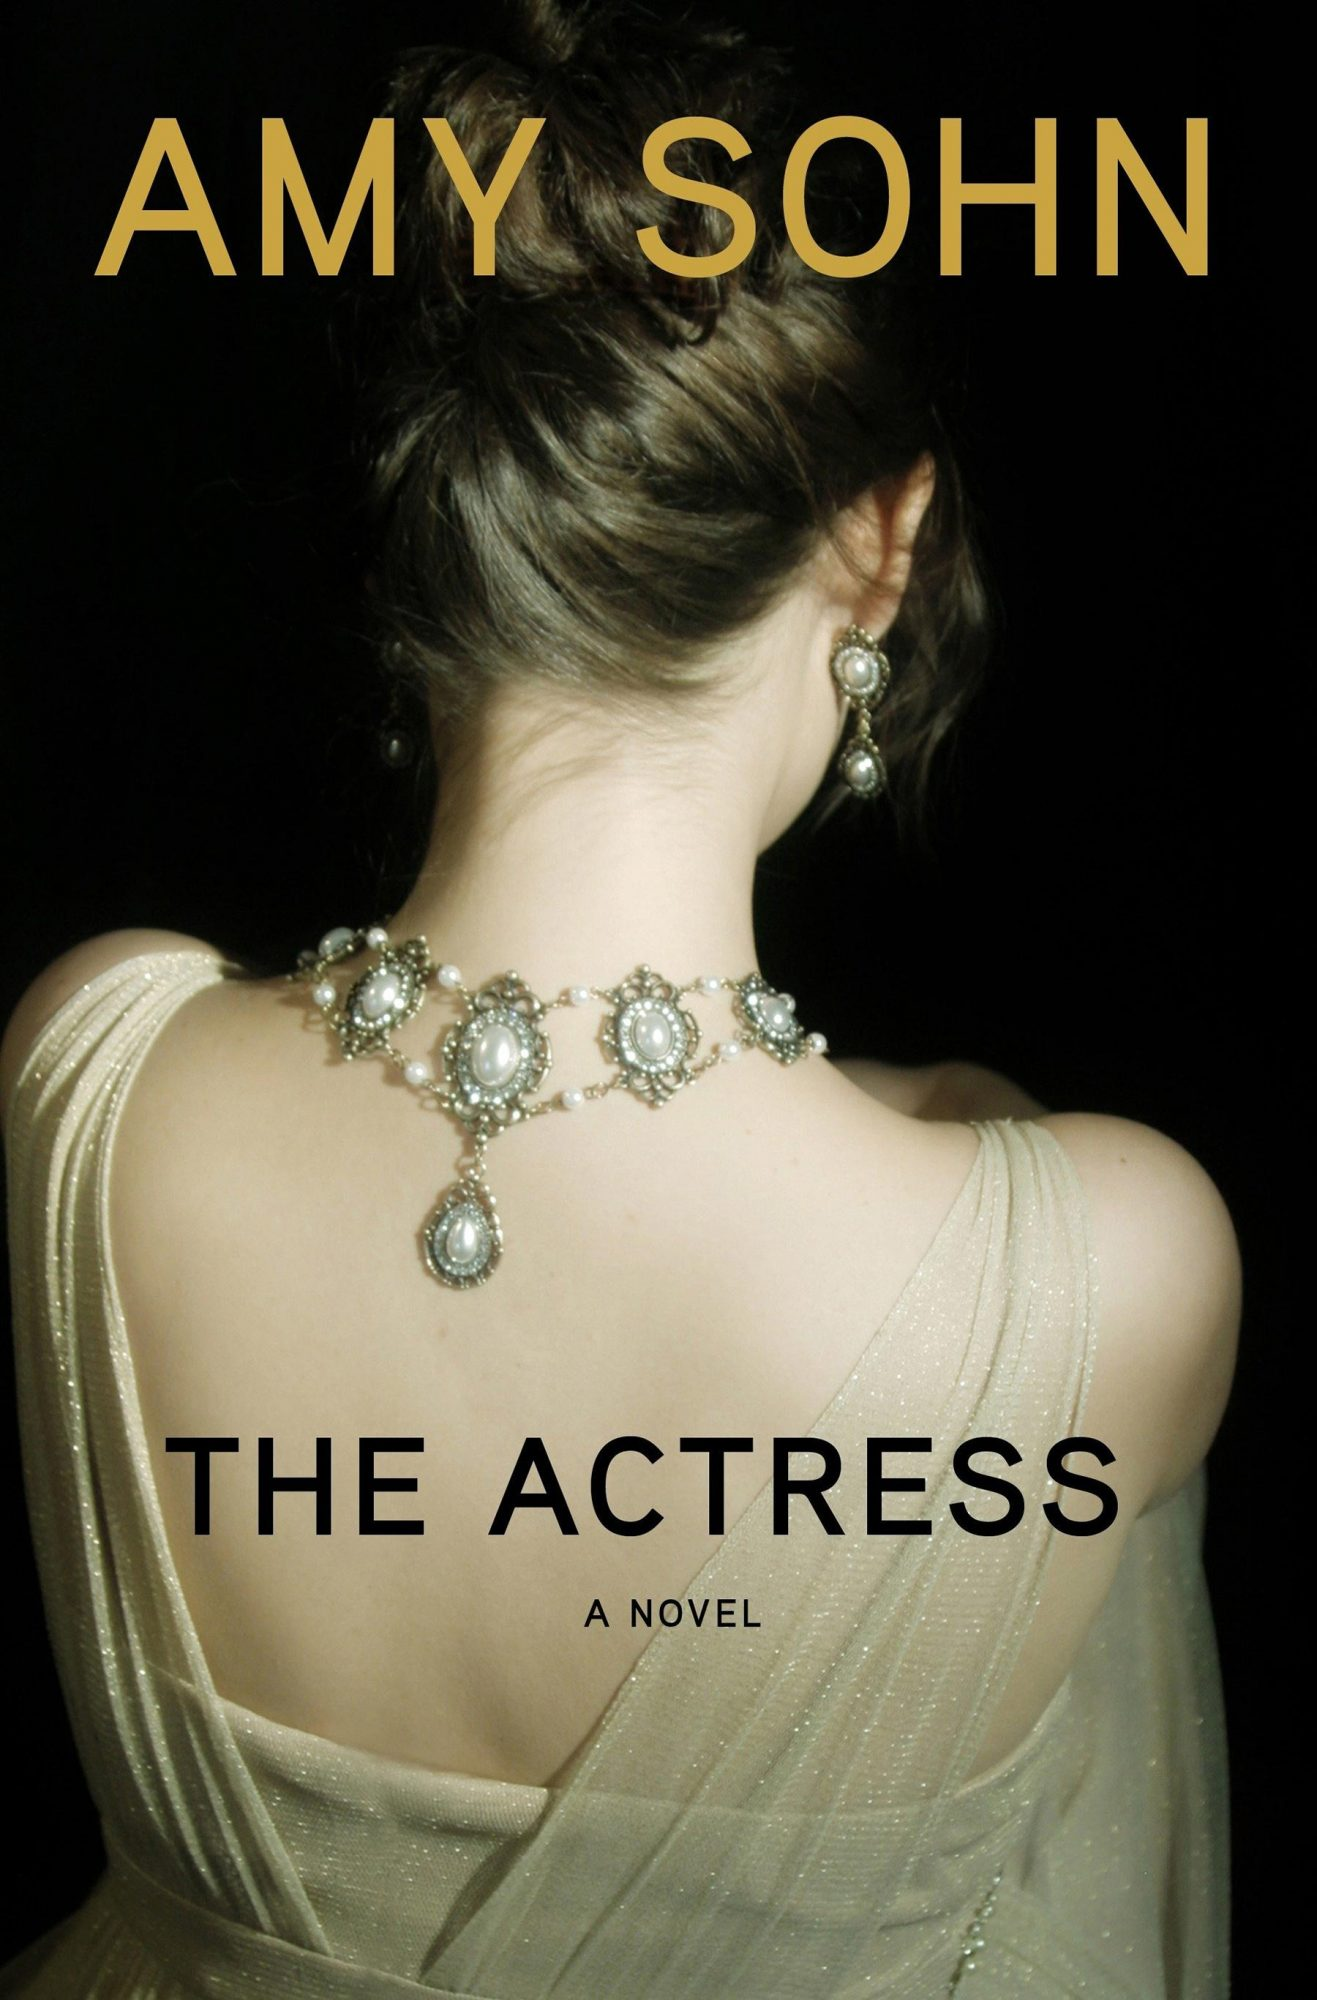 The Actress, by Amy Sohn